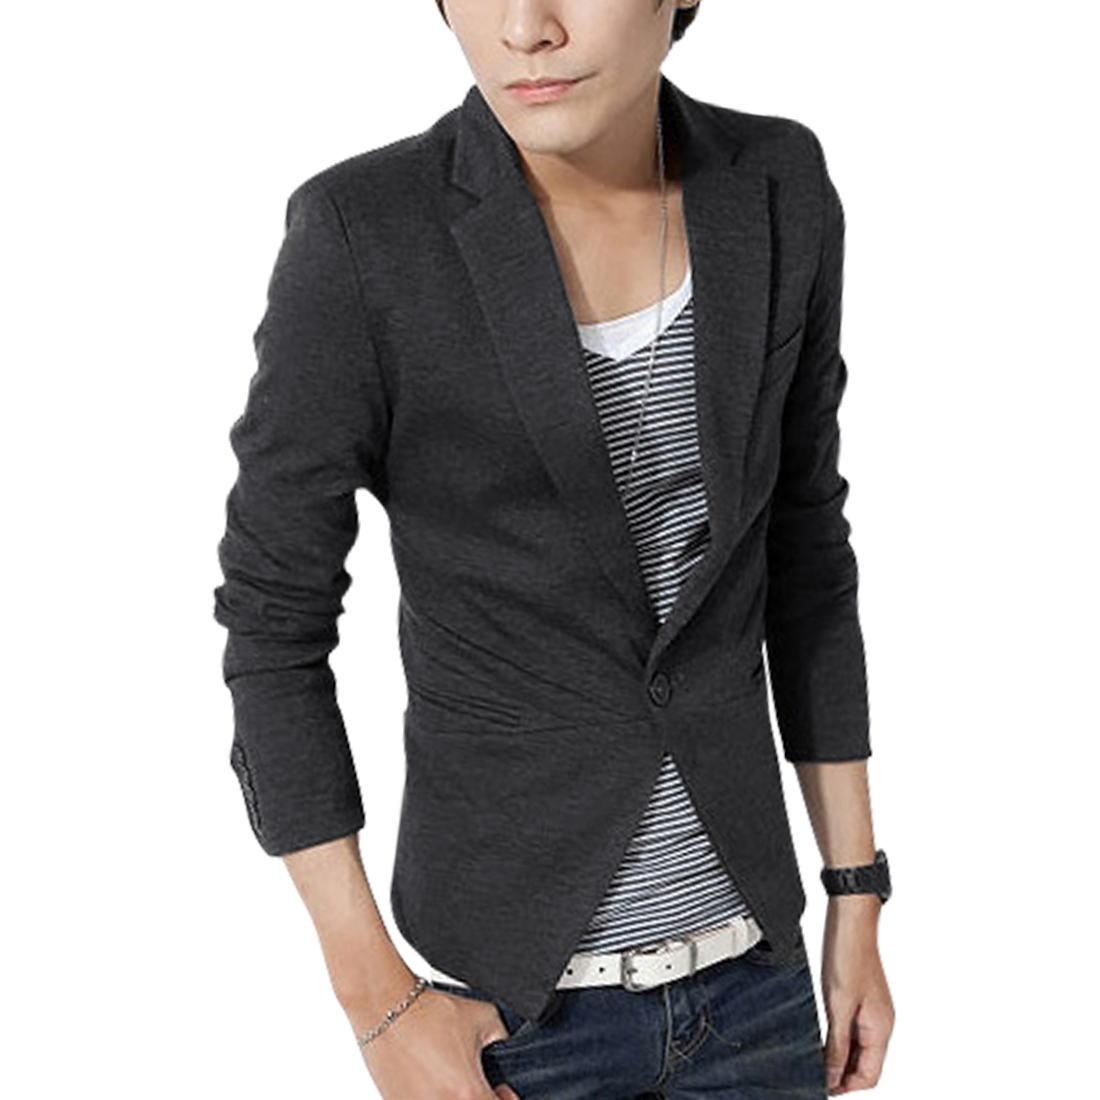 Men's Stylish Notched Lapel Long Sleeves Dark Gray Blazer S